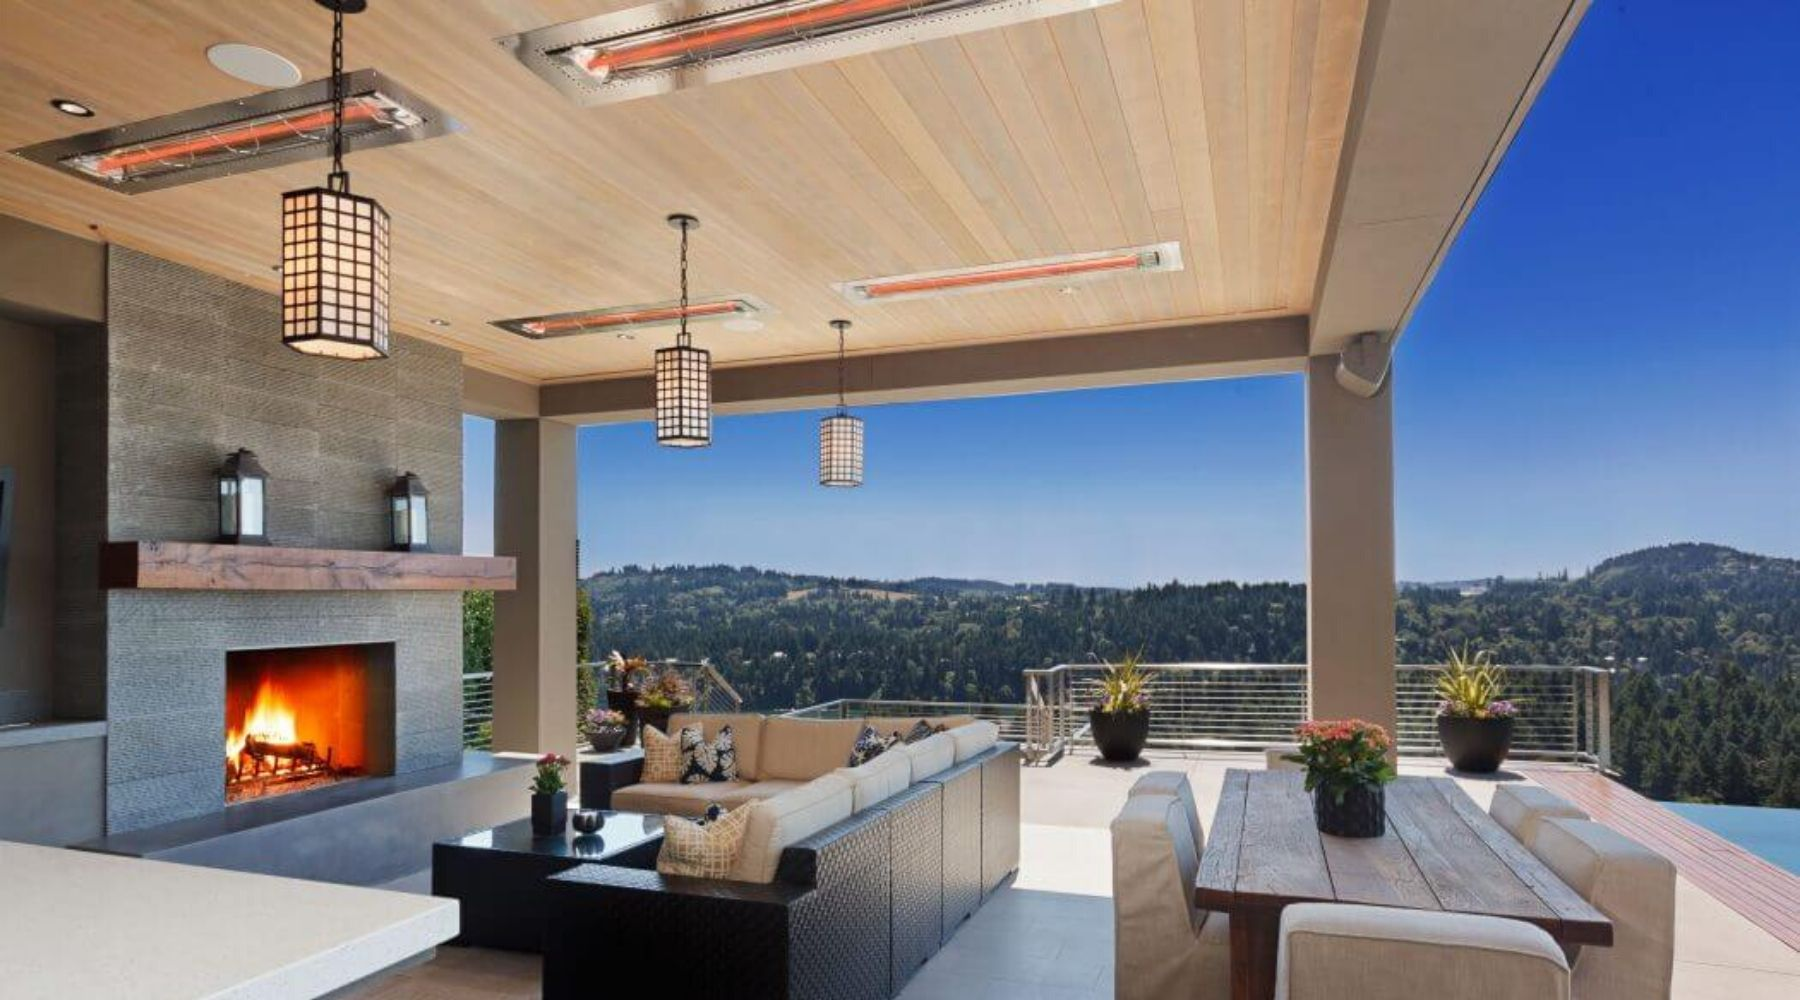 How to Choose the Right Patio Heater?